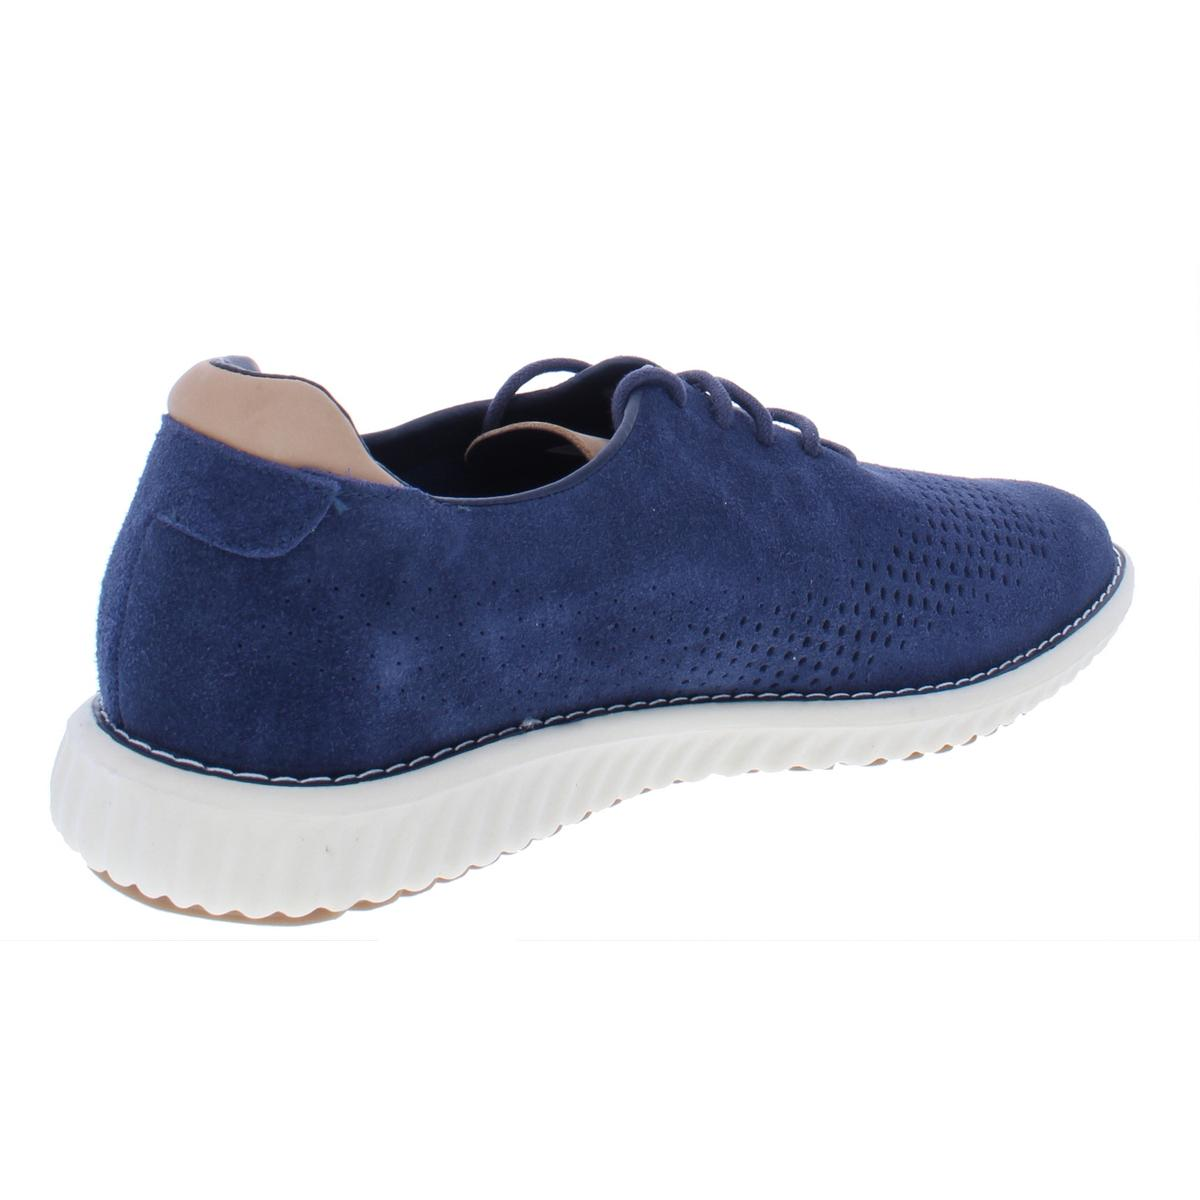 Steve-Madden-Mens-Vaelen-Suede-Perforated-Lace-Up-Oxfords-Sneakers-BHFO-9910 thumbnail 6